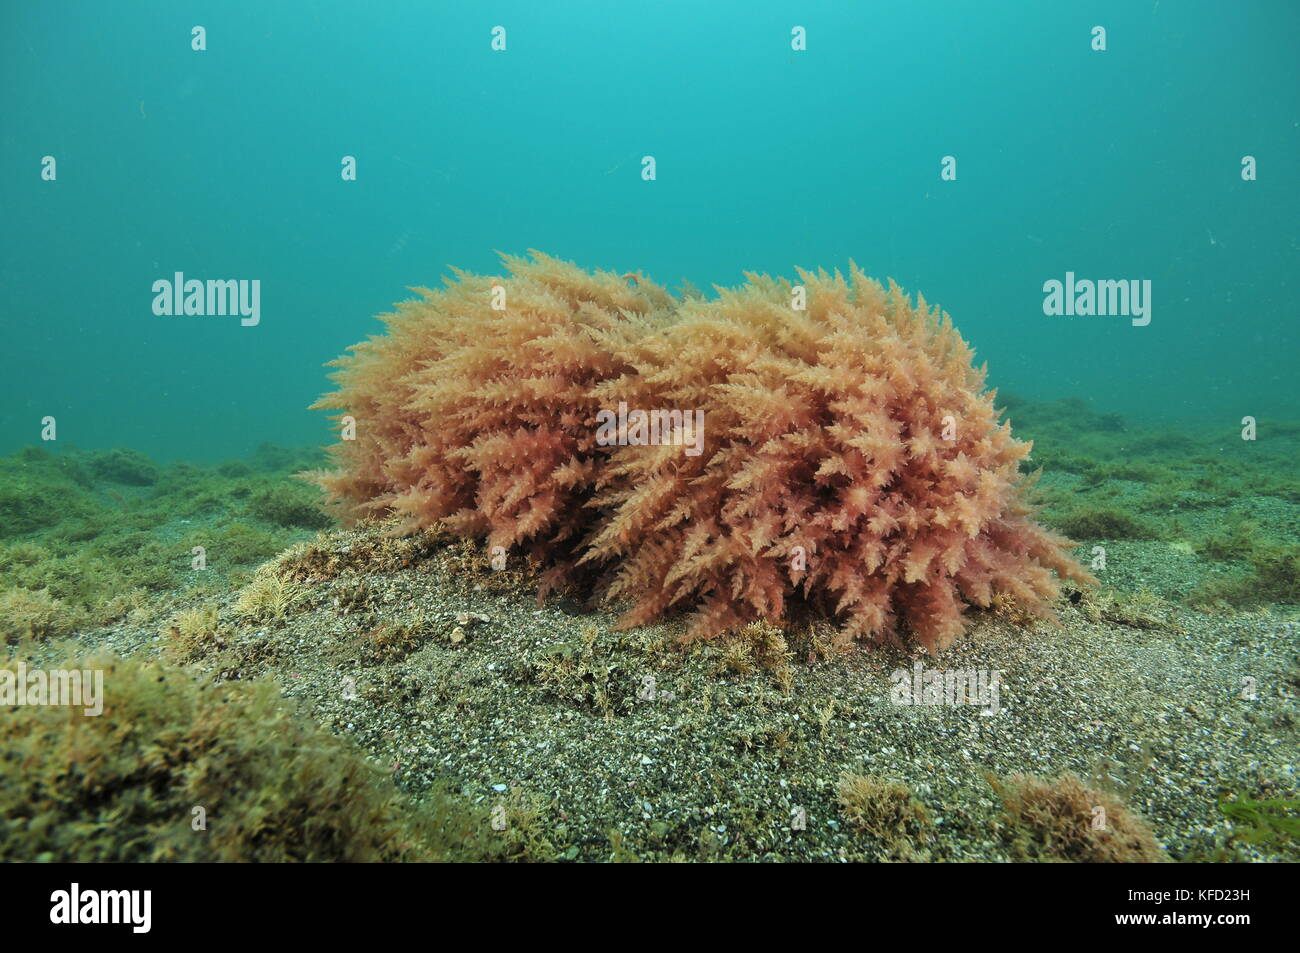 Two round bushes of red seaweed on rock protruding from flat ocean bottom of coarse sand. - Stock Image